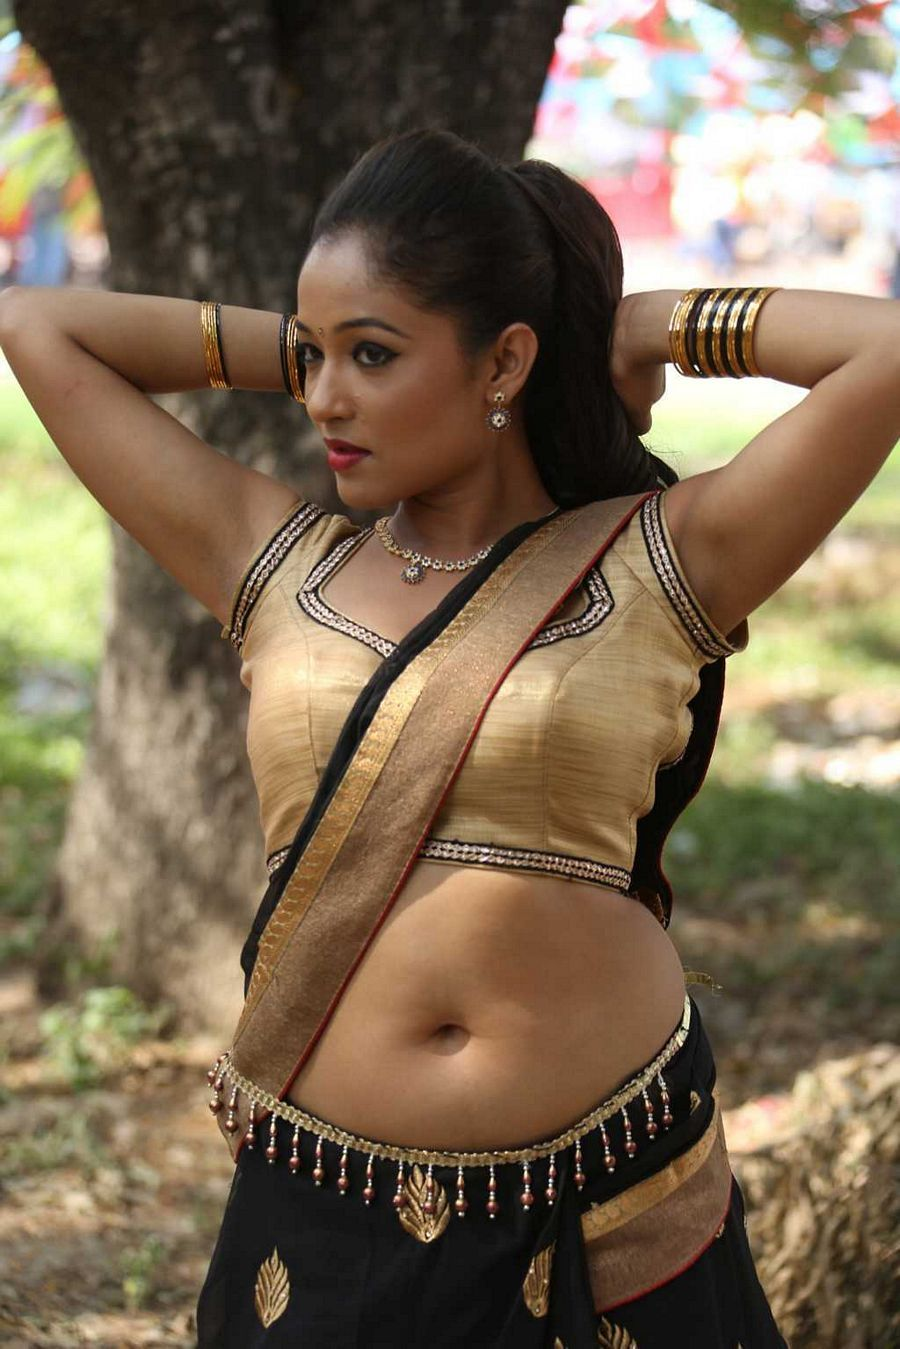 indian-womenclit-pic-free-mom-girl-boobs